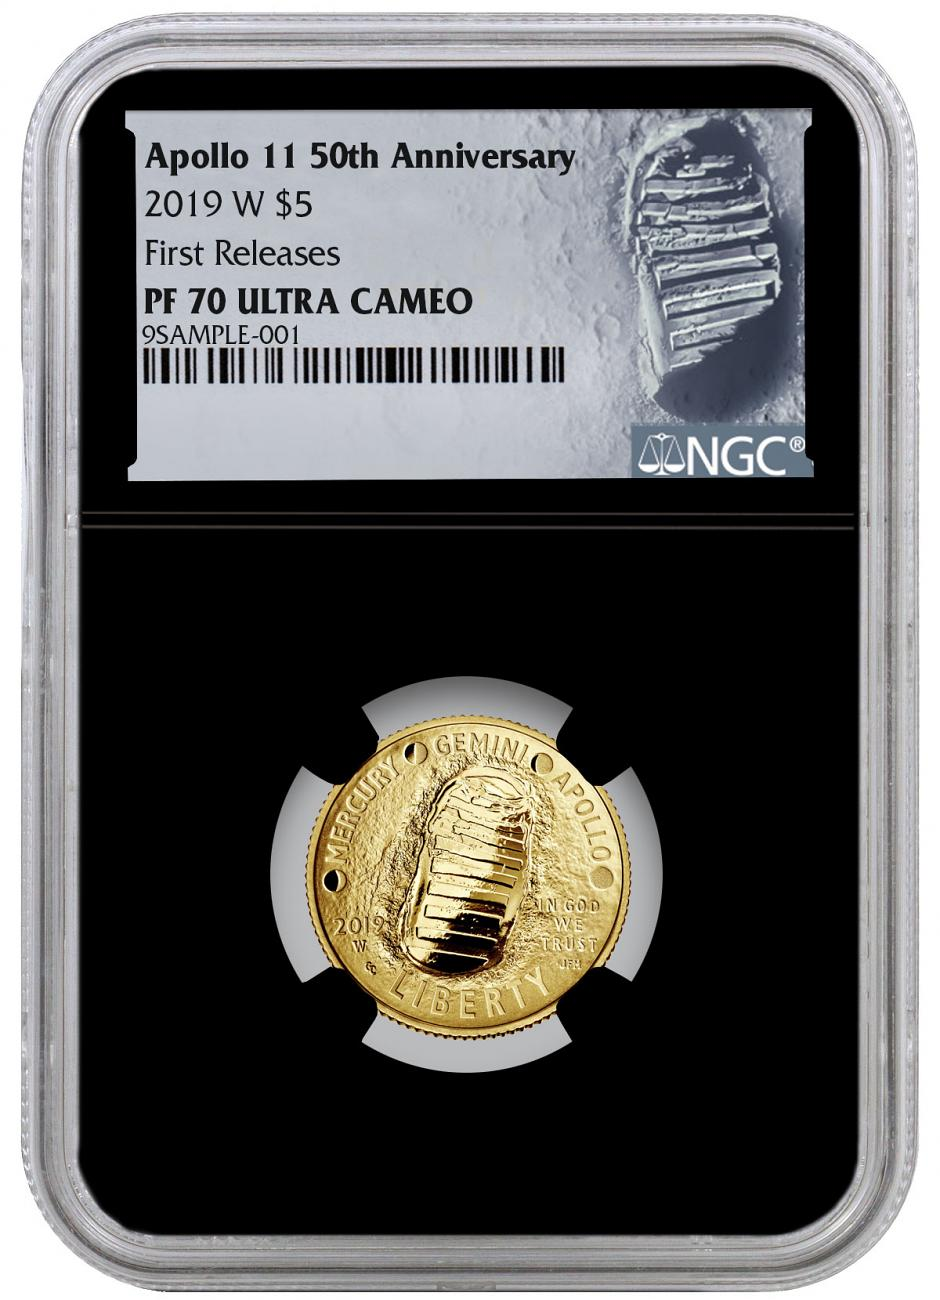 2019-W US Apollo 11 50th Anniversary $5 Gold Commemorative Proof Coin NGC PF70 FR Black Core Holder Moon Label